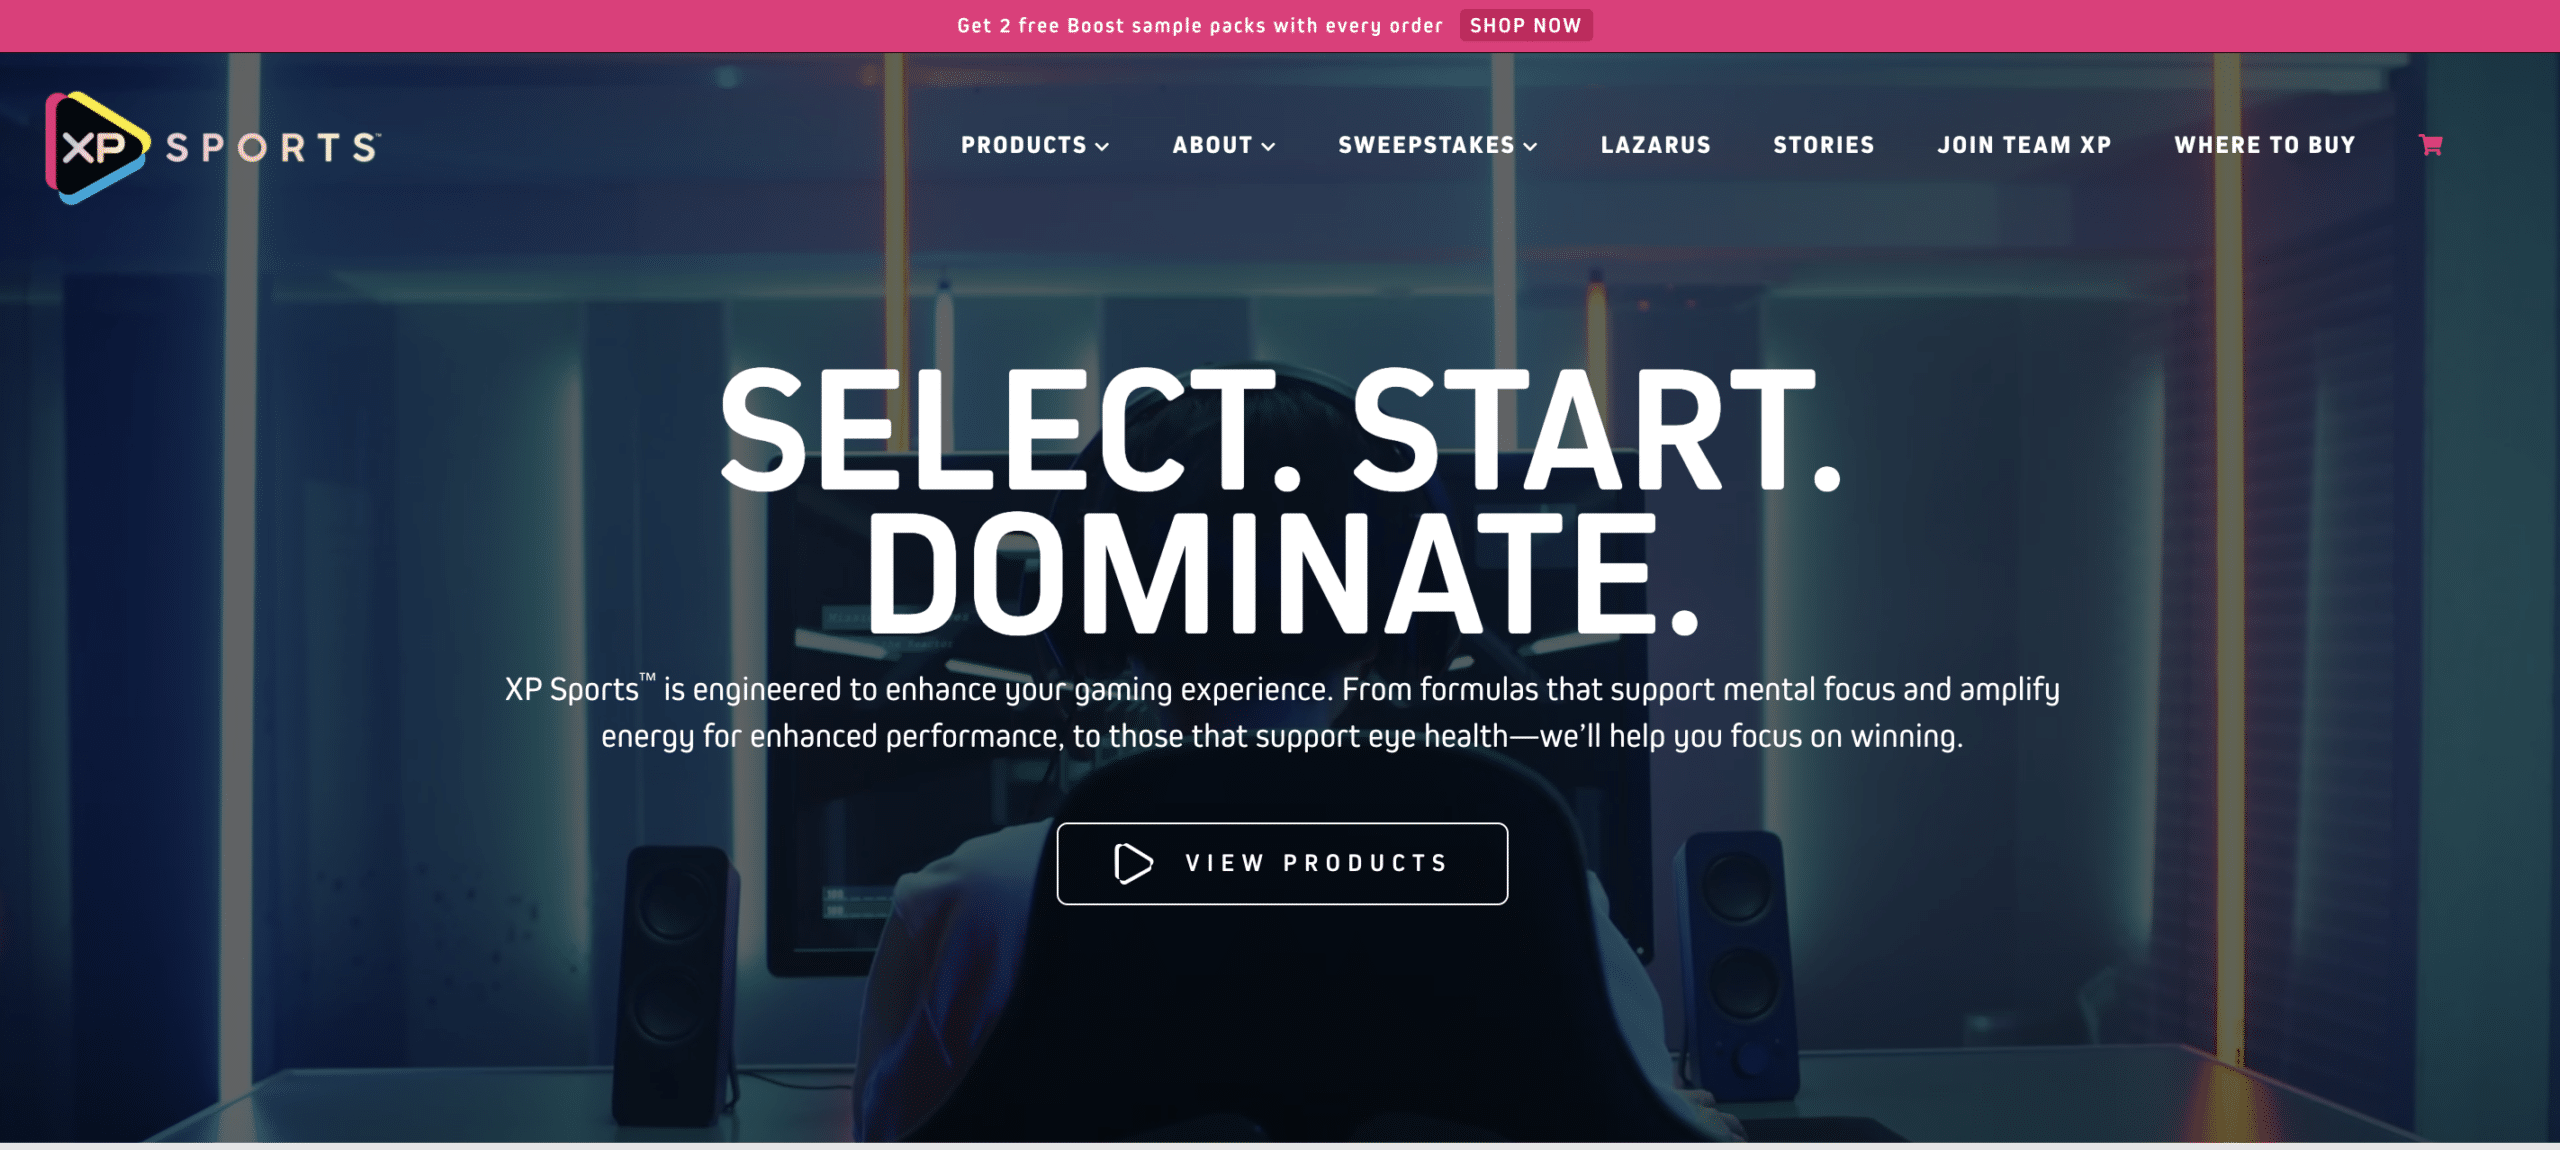 Building on WP Engine's platform with Genesis themes, Iovate is able to launch dynamic brands like XP Sports faster, bringing them to life with high-performing, beautifully-designed websites.